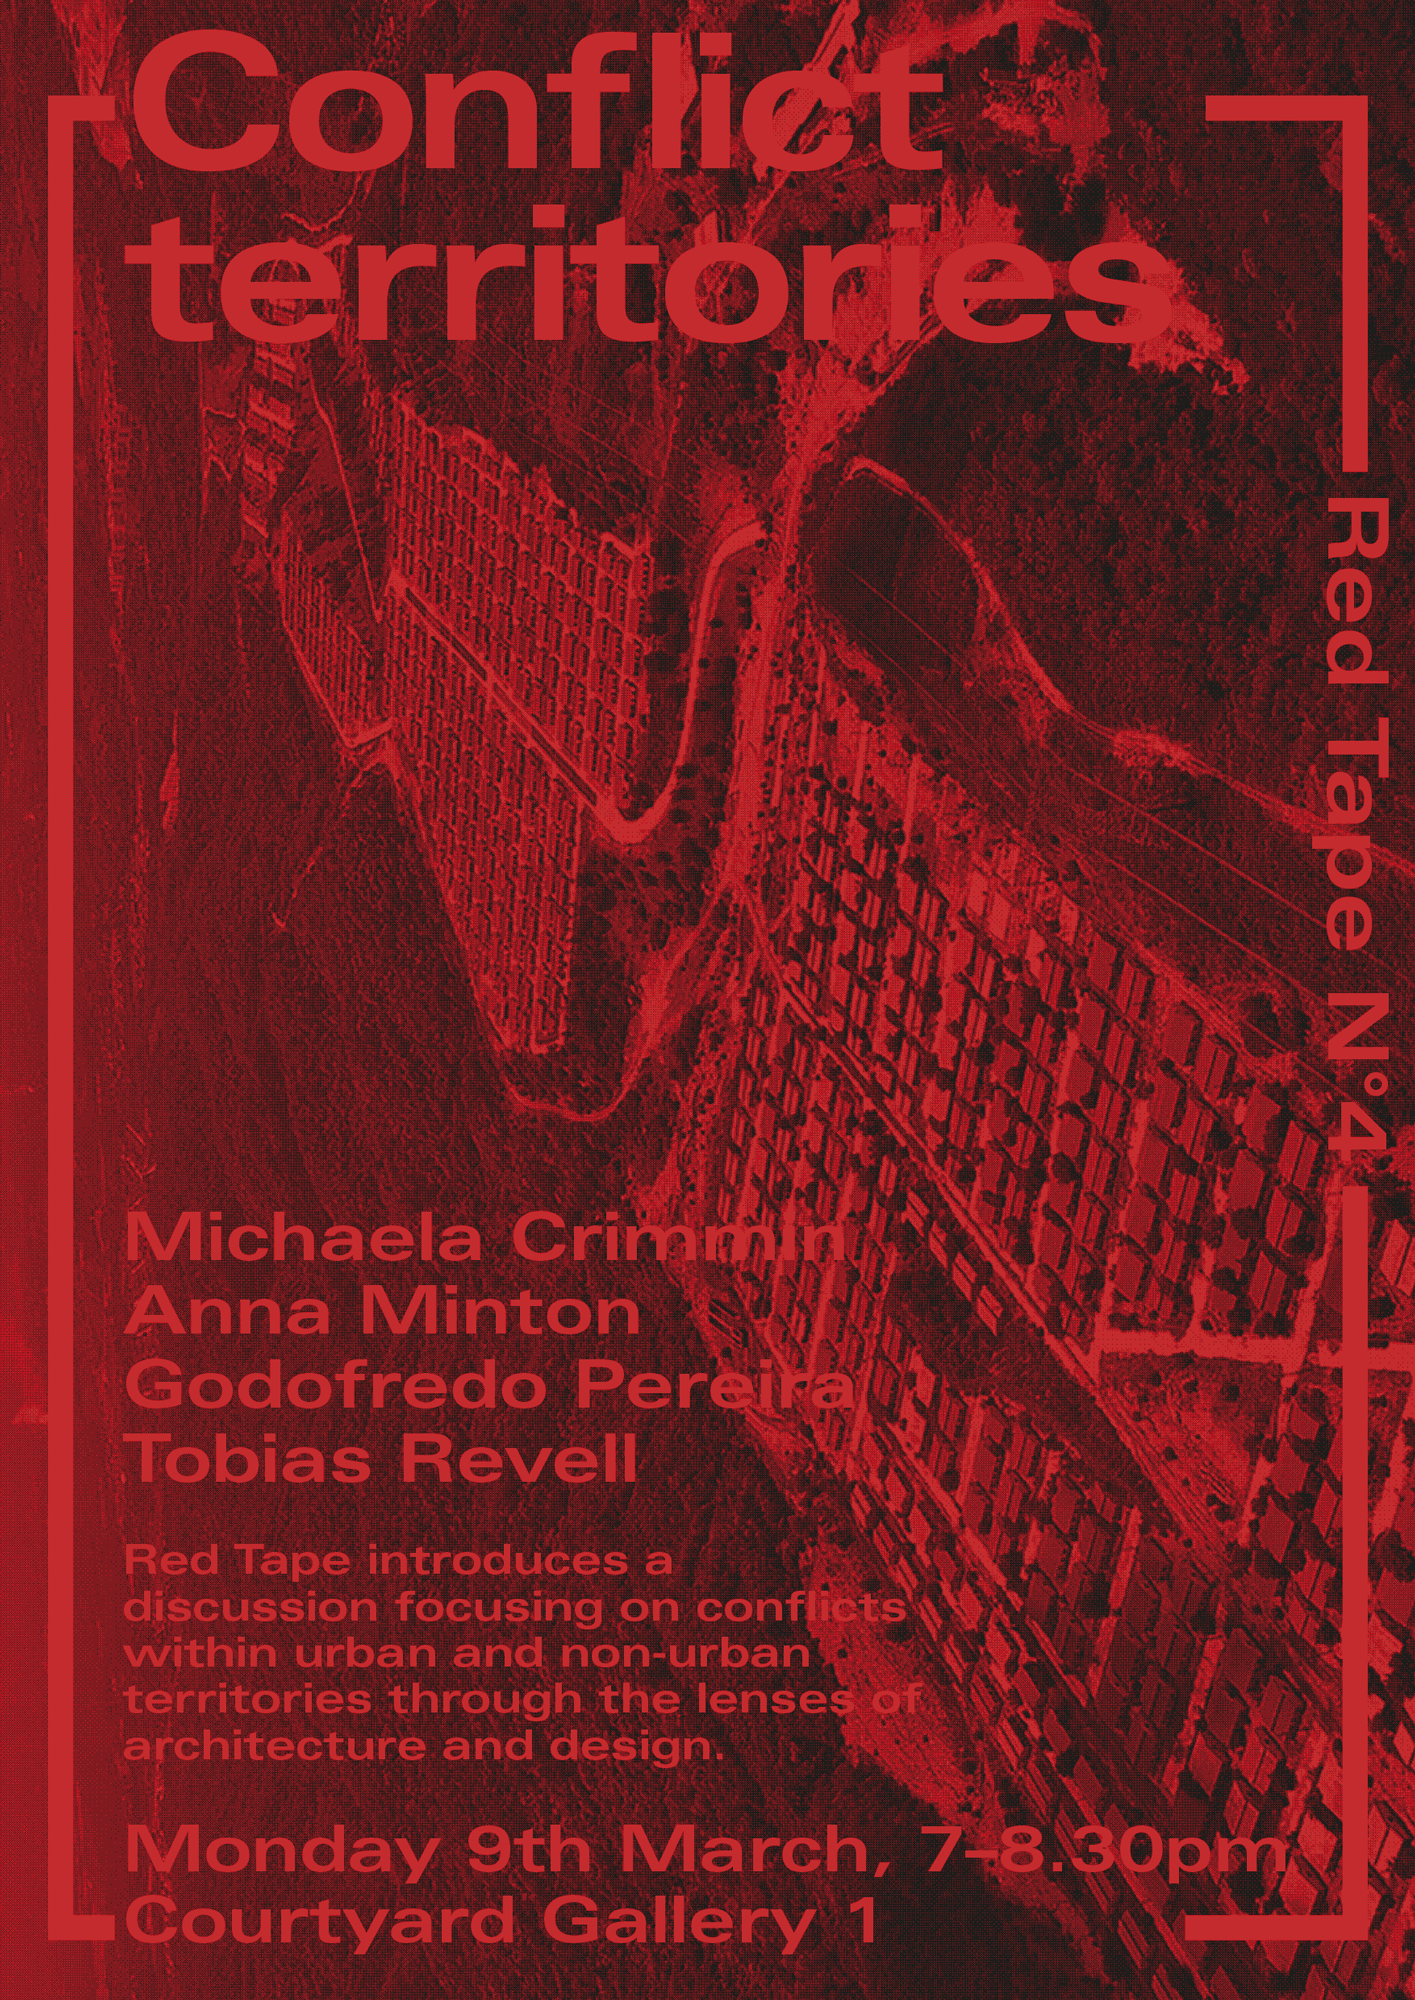 Poster for the Red Tape series.